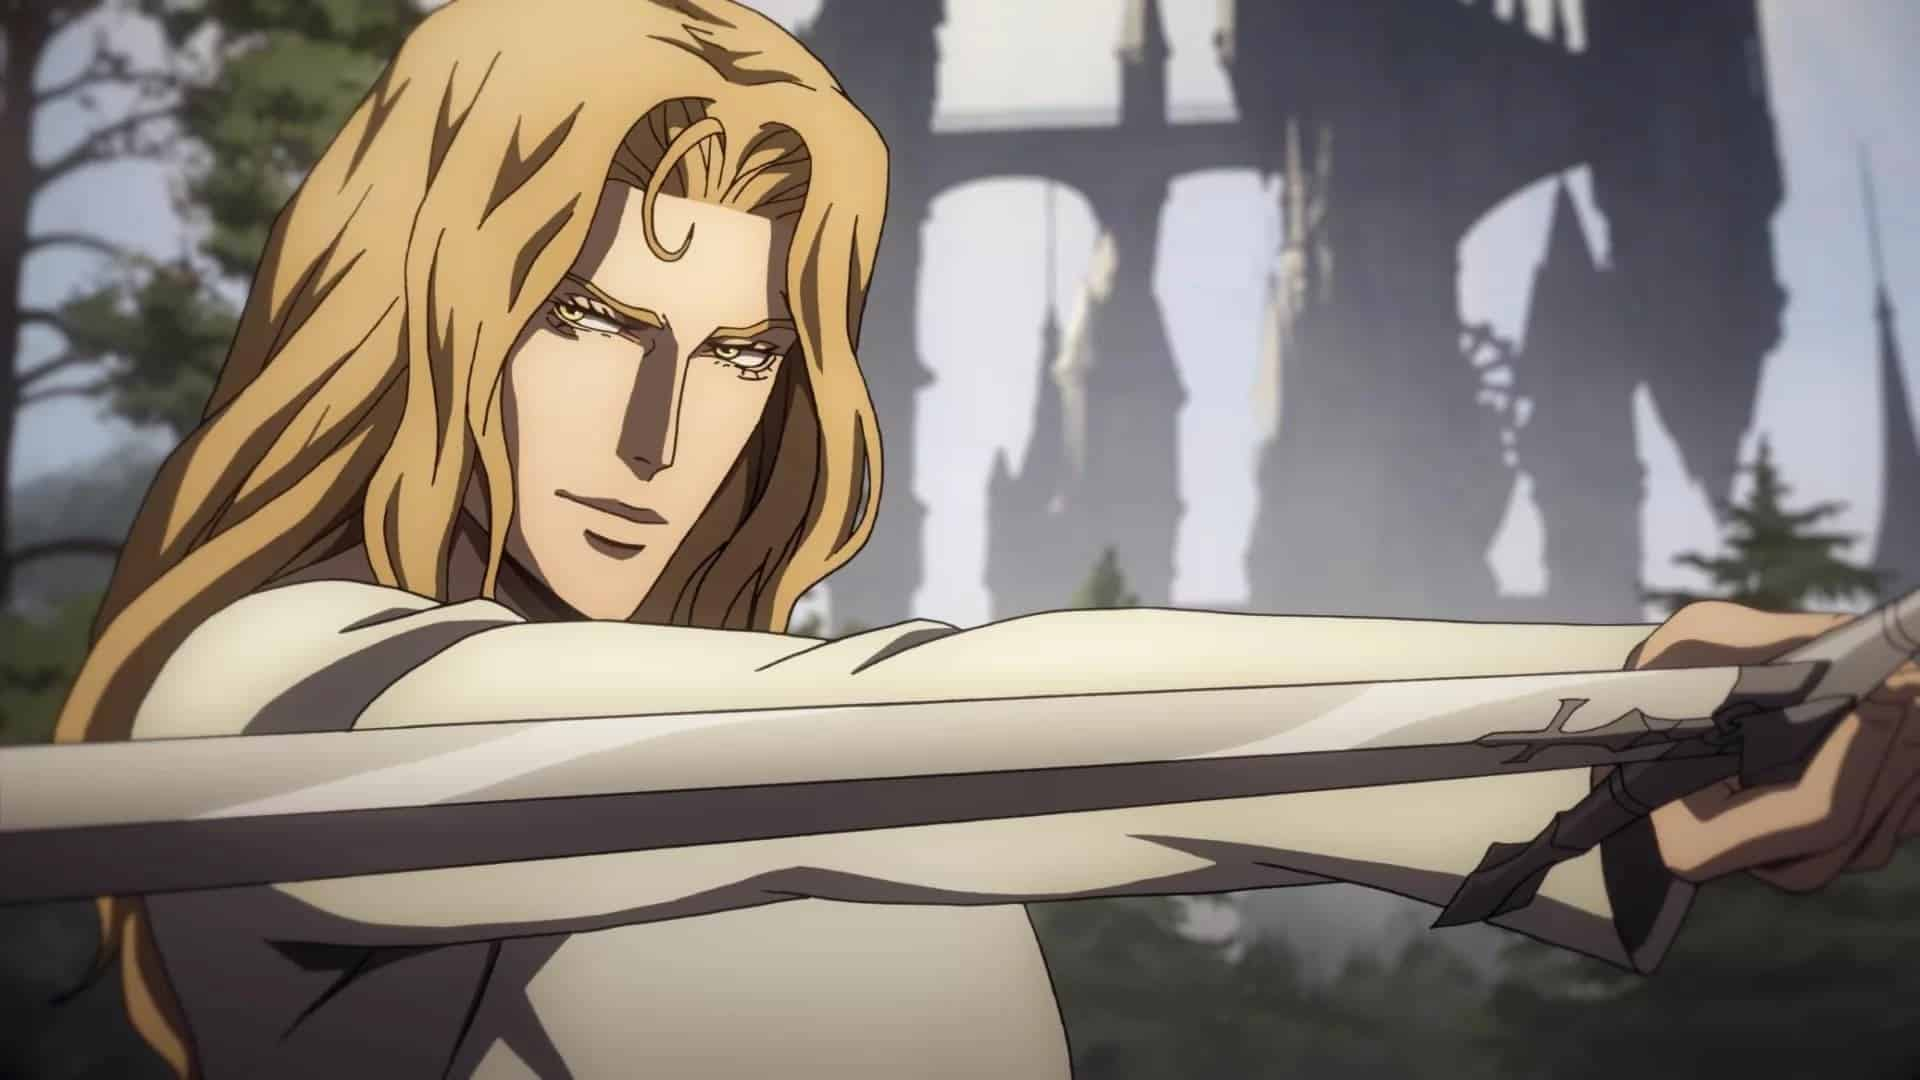 Castlevania season 3 episode 5 review A Seat of Civilisation and Refinement: Alucard trains with choppy animation